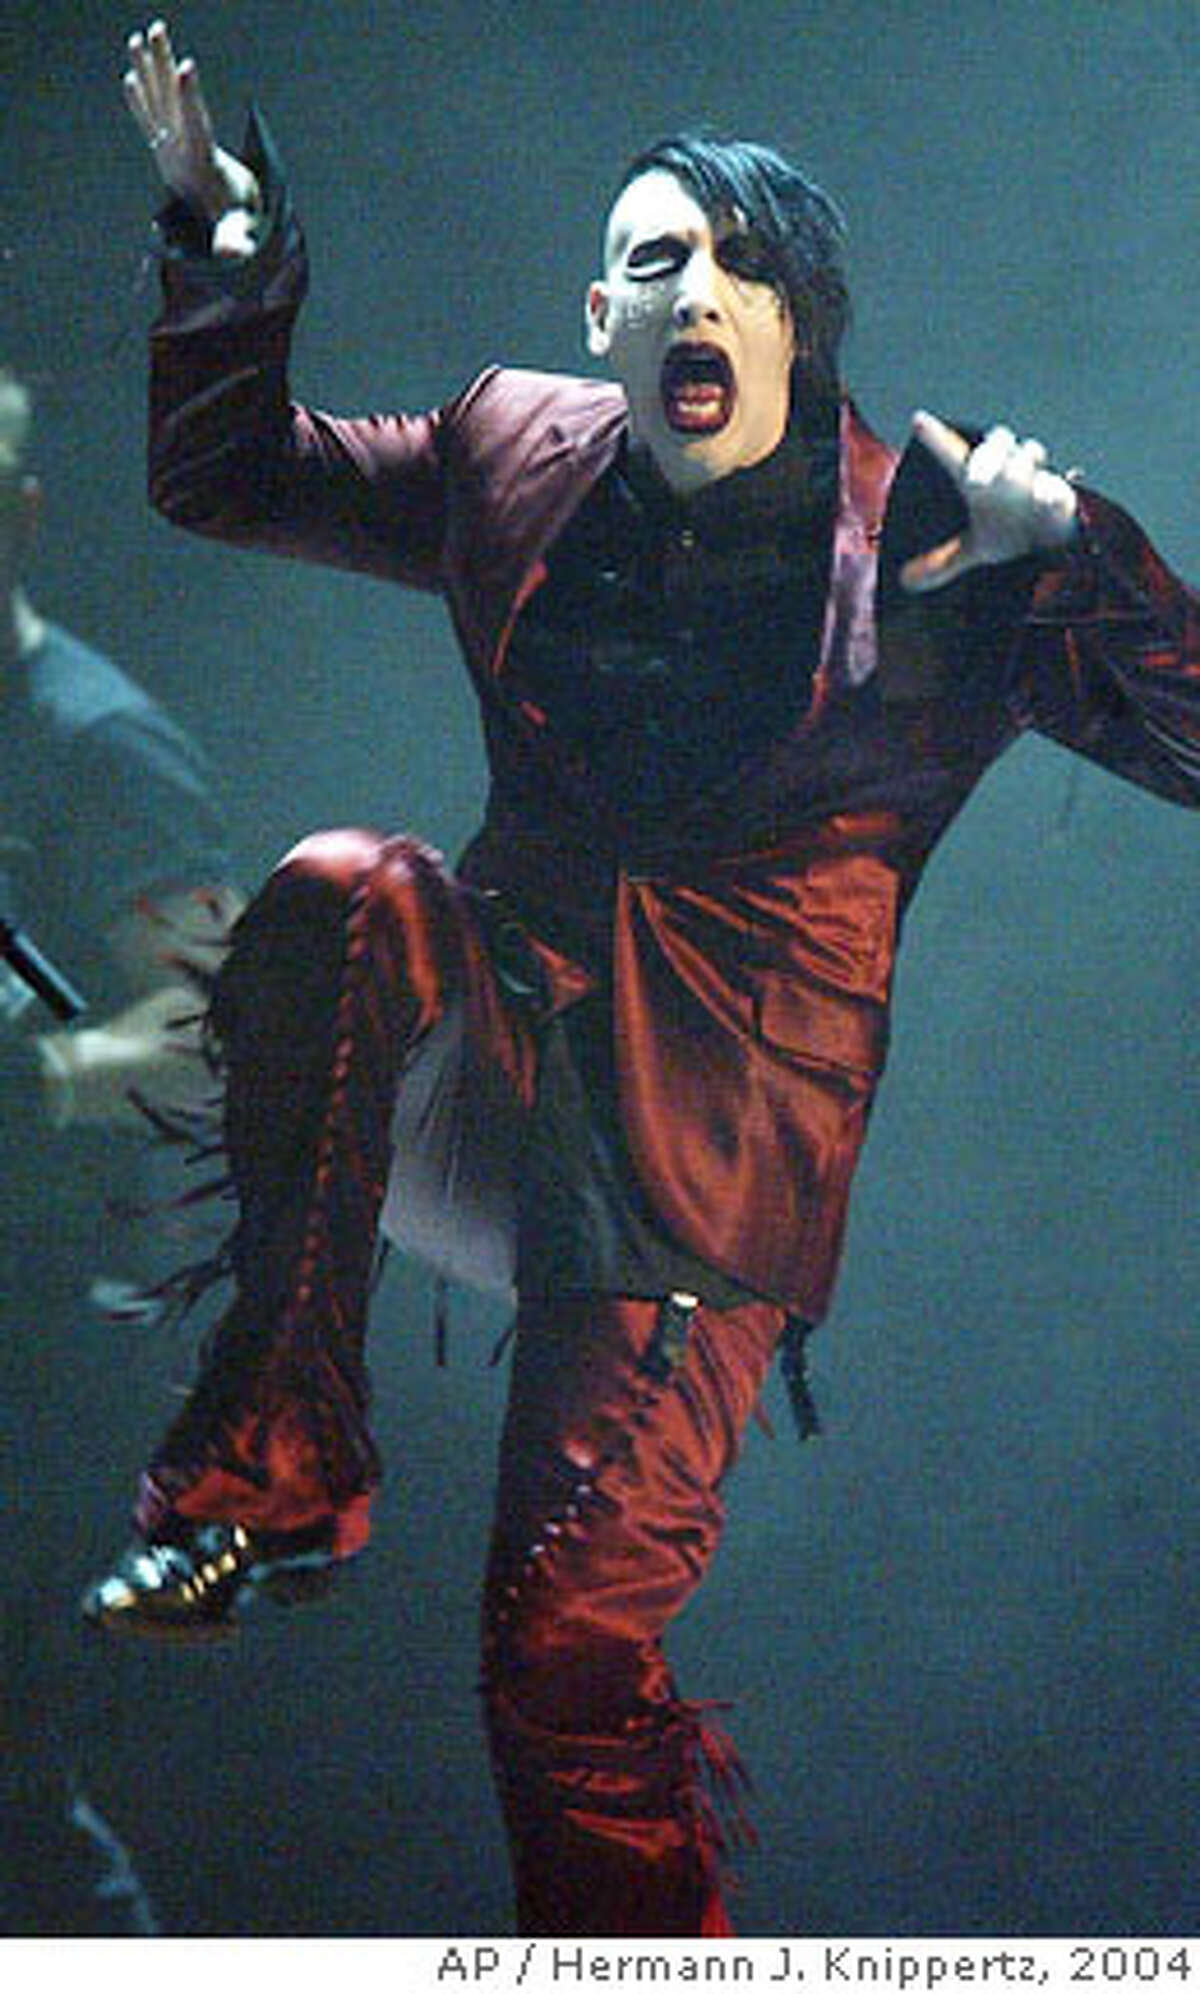 Rock star Marilyn Manson performs at the Koelnarena in Cologne, western Germany, Friday, Sept. 24, 2004, during the entertainment part of the Comet German music award ceremonies. (AP Photo/Hermann J. Knippertz) Ran on: 10-01-2004 Marilyn Manson will be at the Warfield Nov. 1.